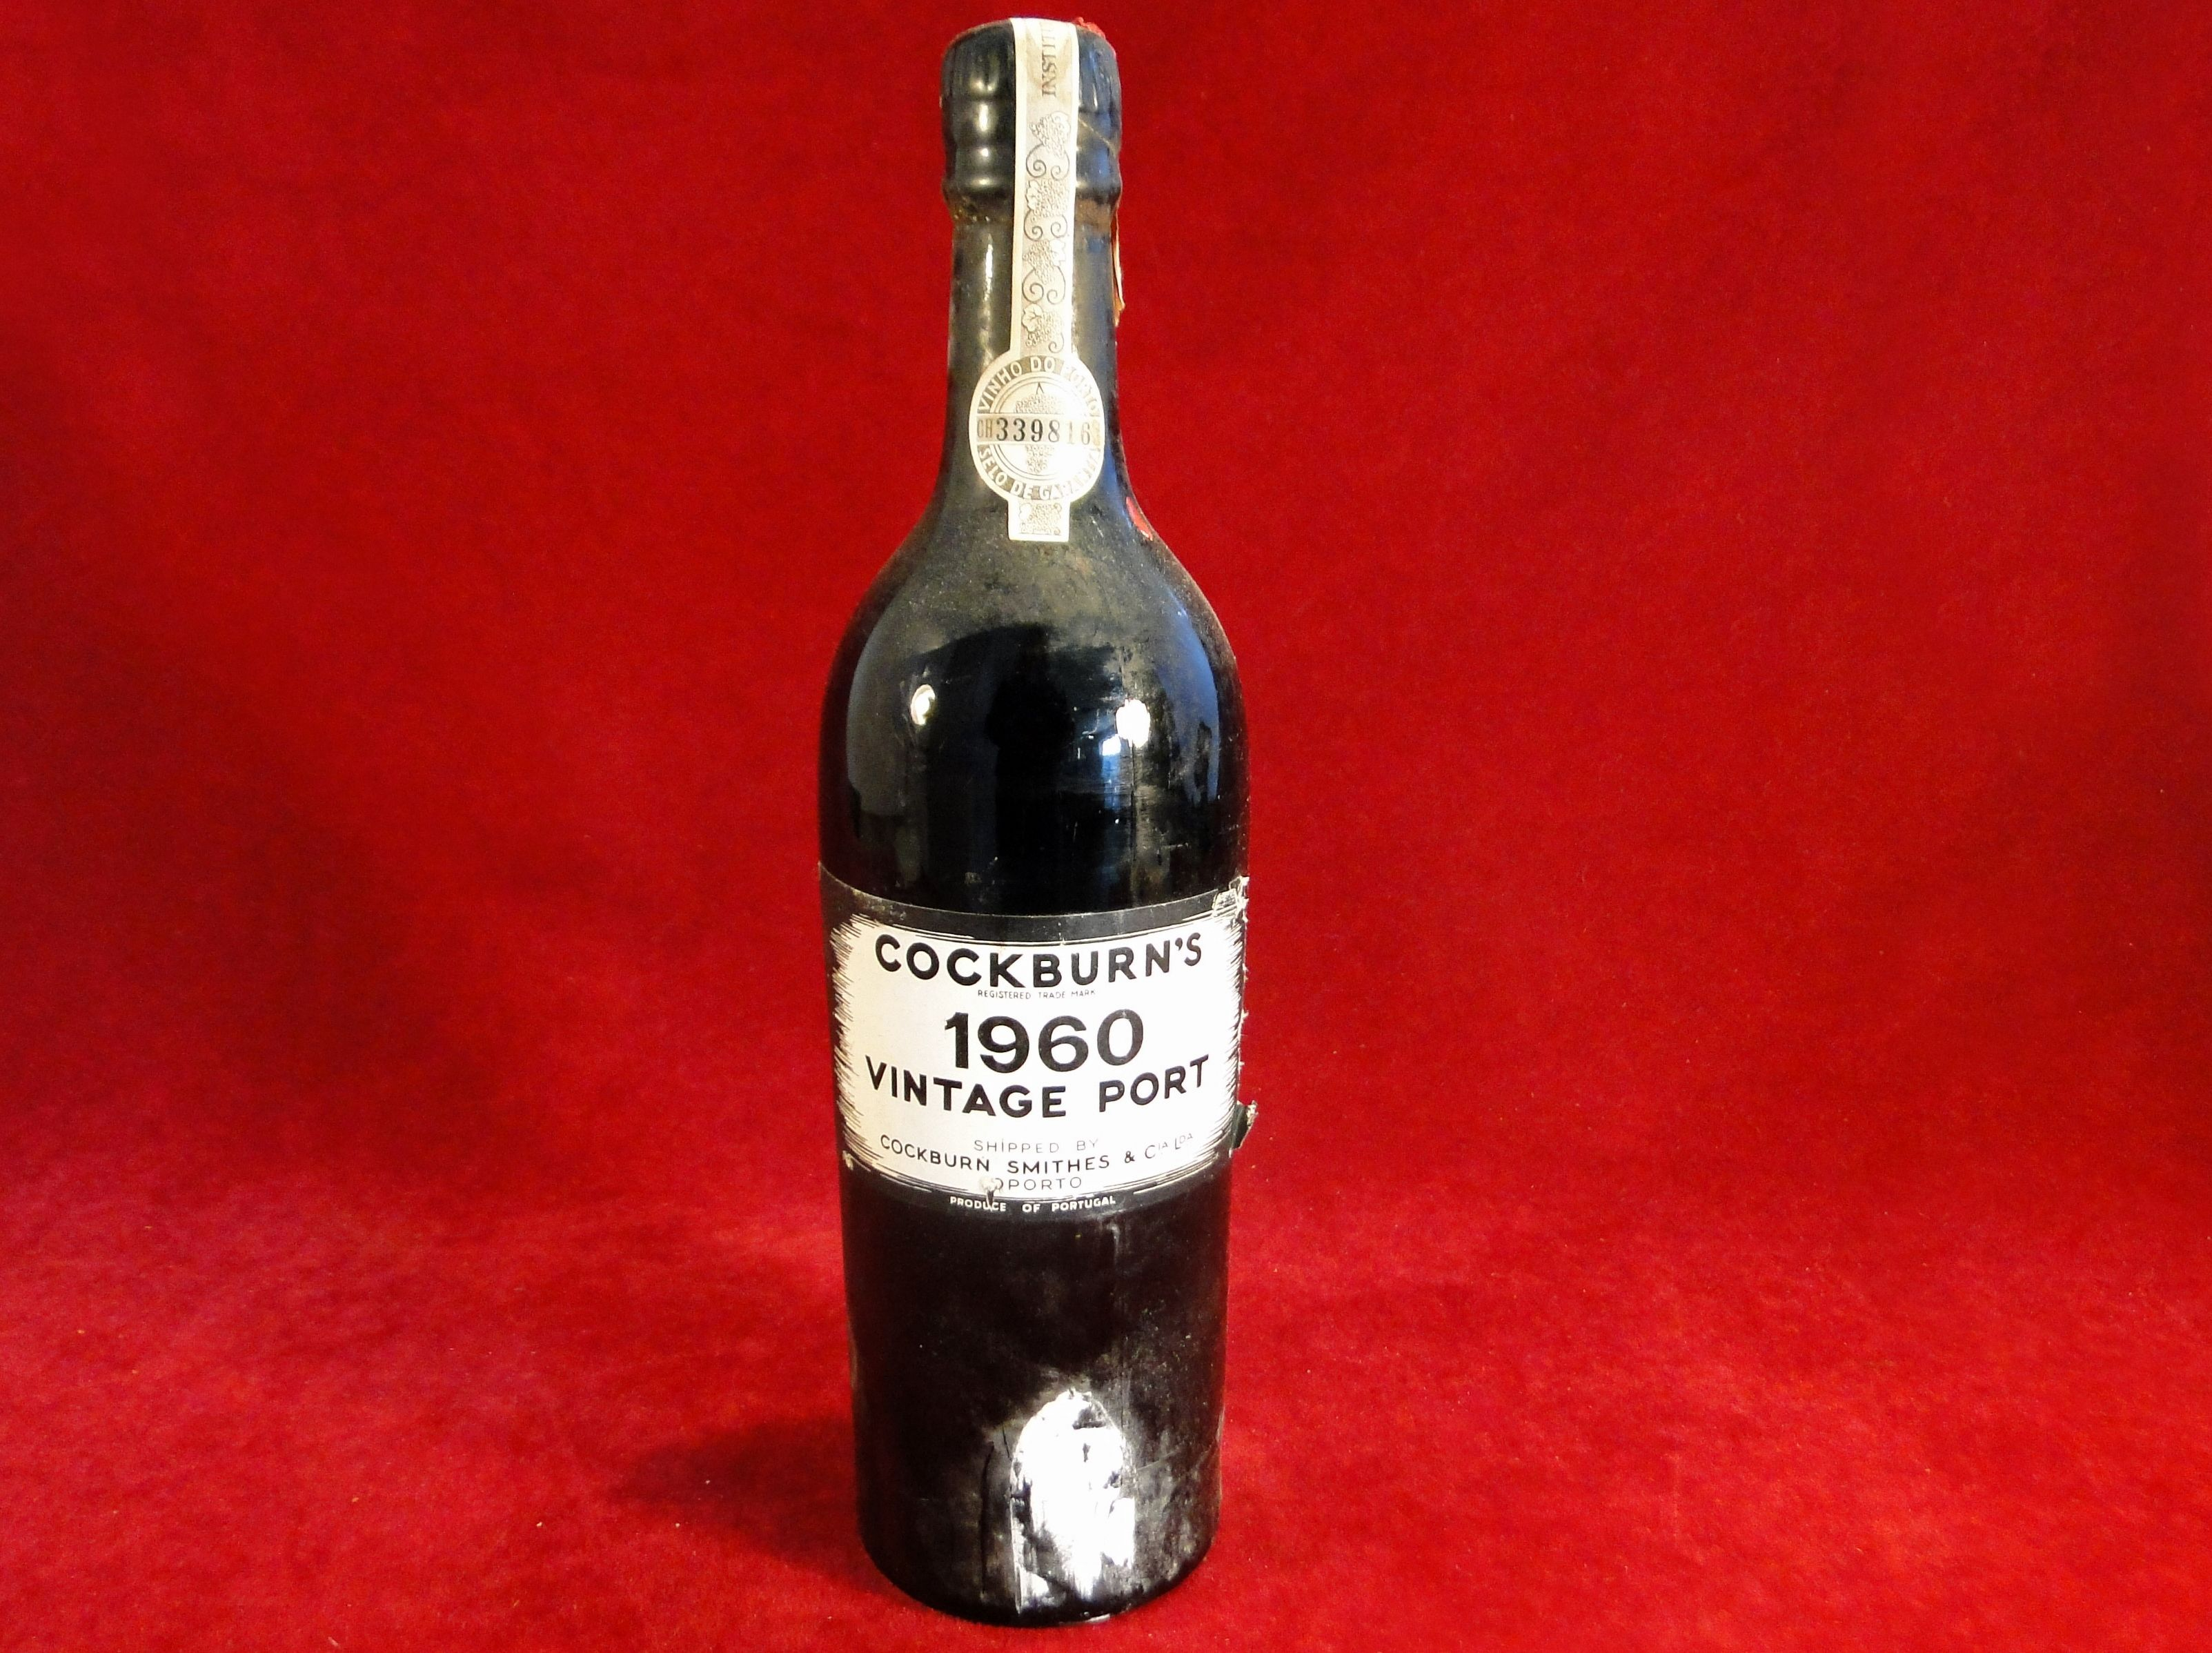 196 A Bottle Of Cockburn S 1960 Vintage Port Est 25 35 Bottle Champagne Bottle Wine Bottle